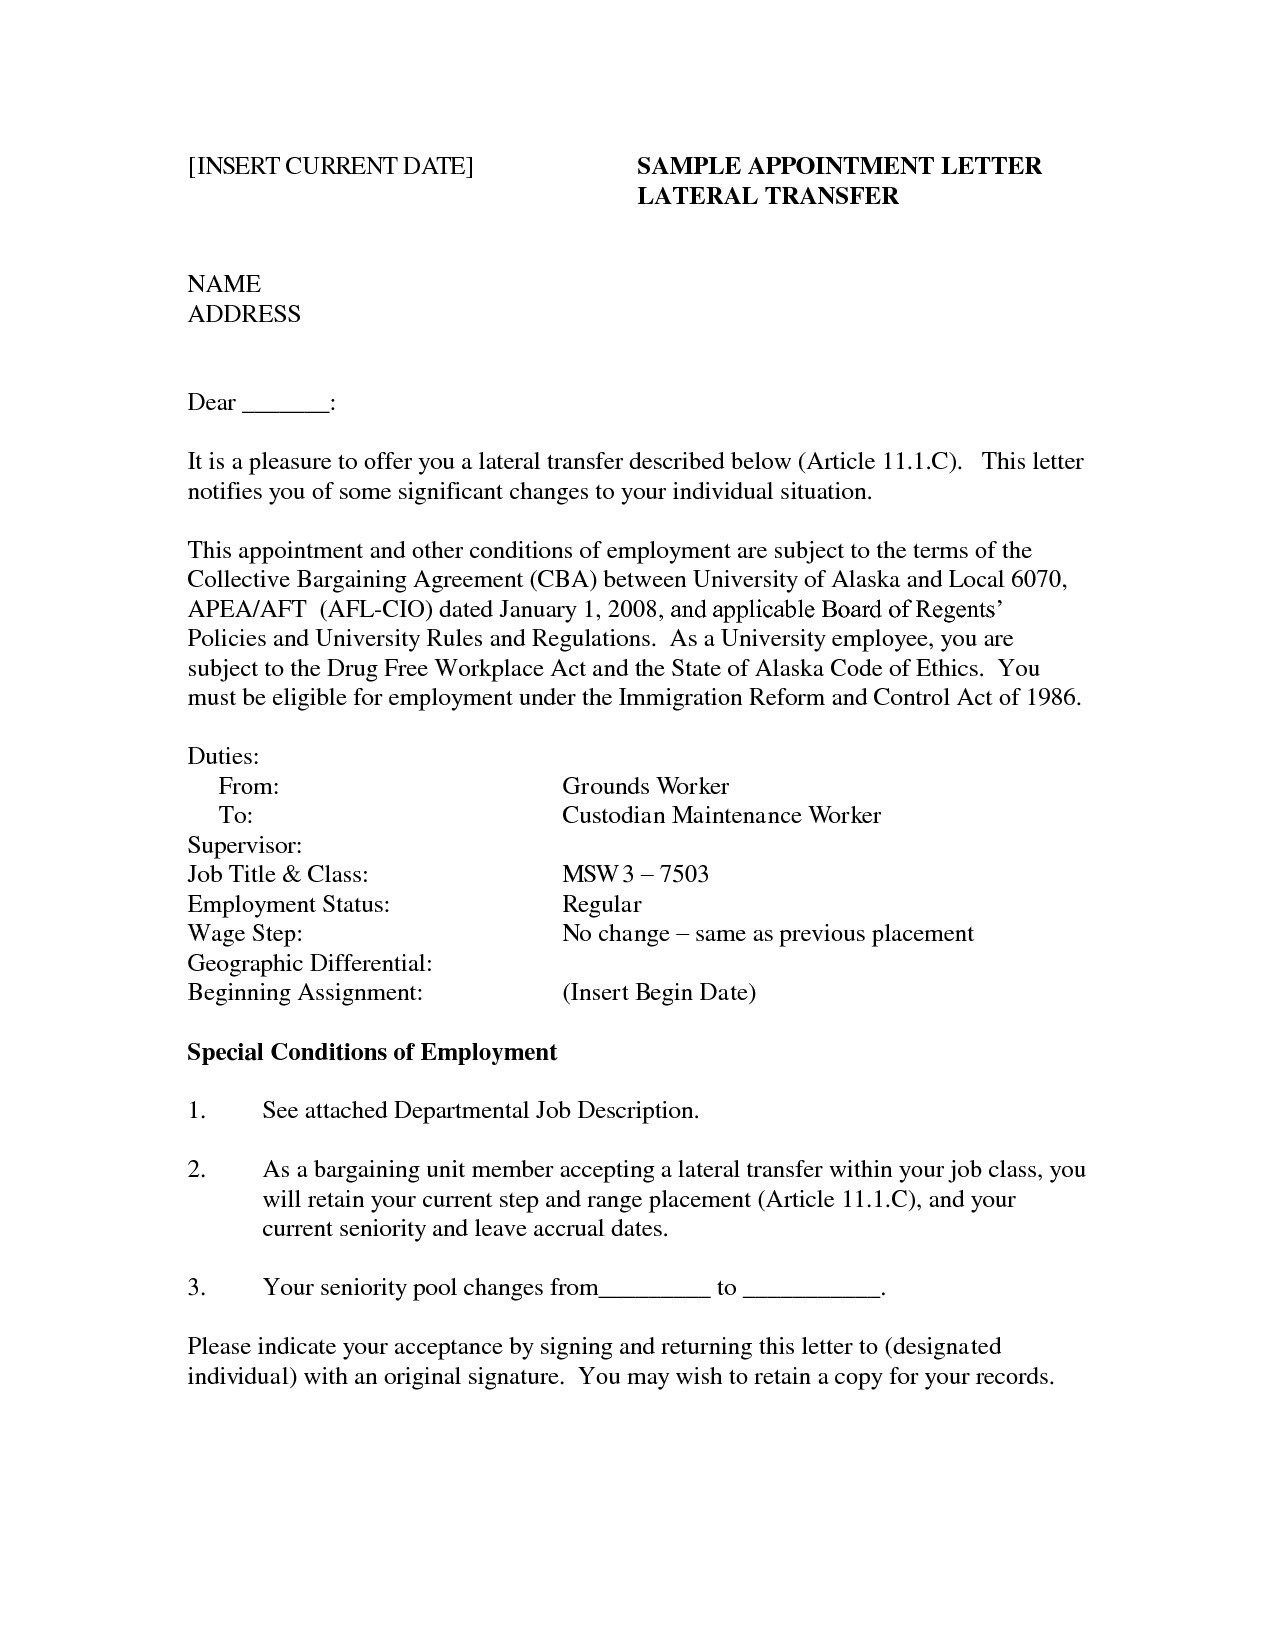 Hr Cover Letter Template - Job Application Letter format Template Copy Cover Letter Template Hr